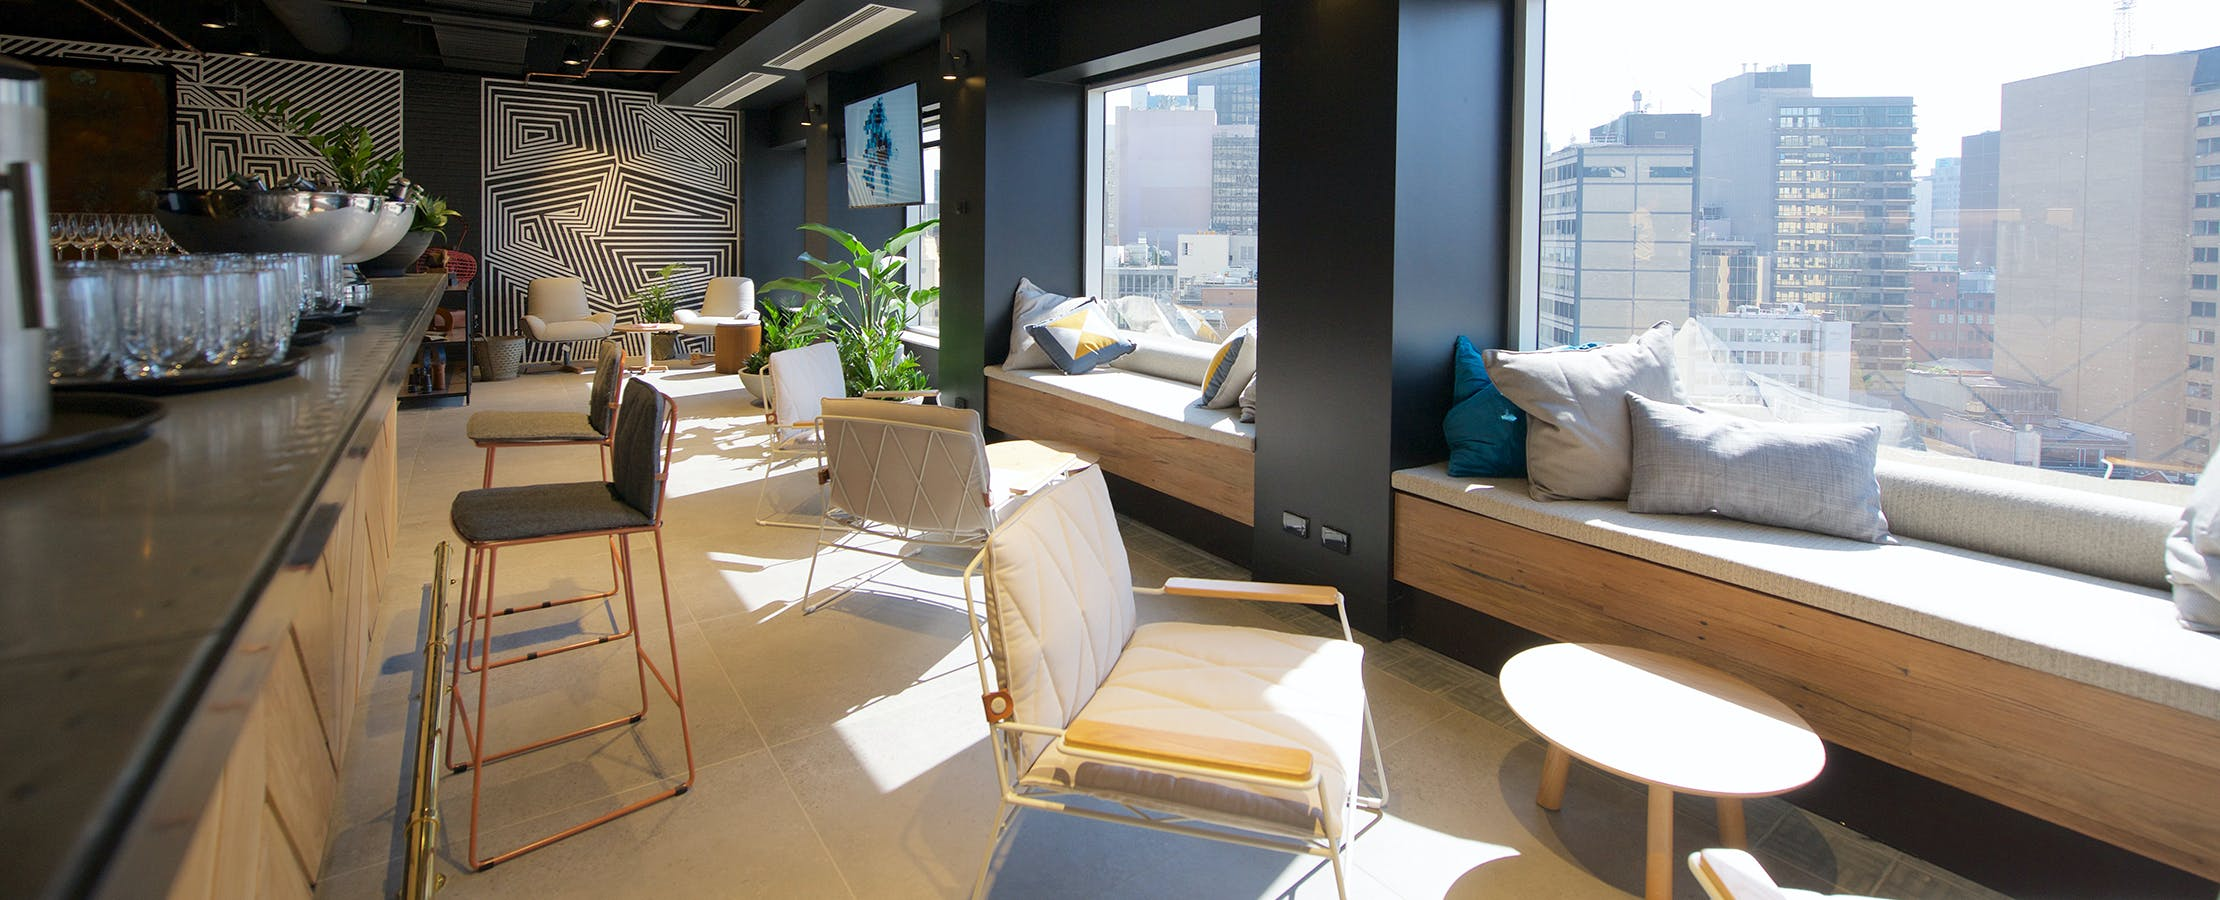 This stylish multi-use space is perfect for your next event, image 1